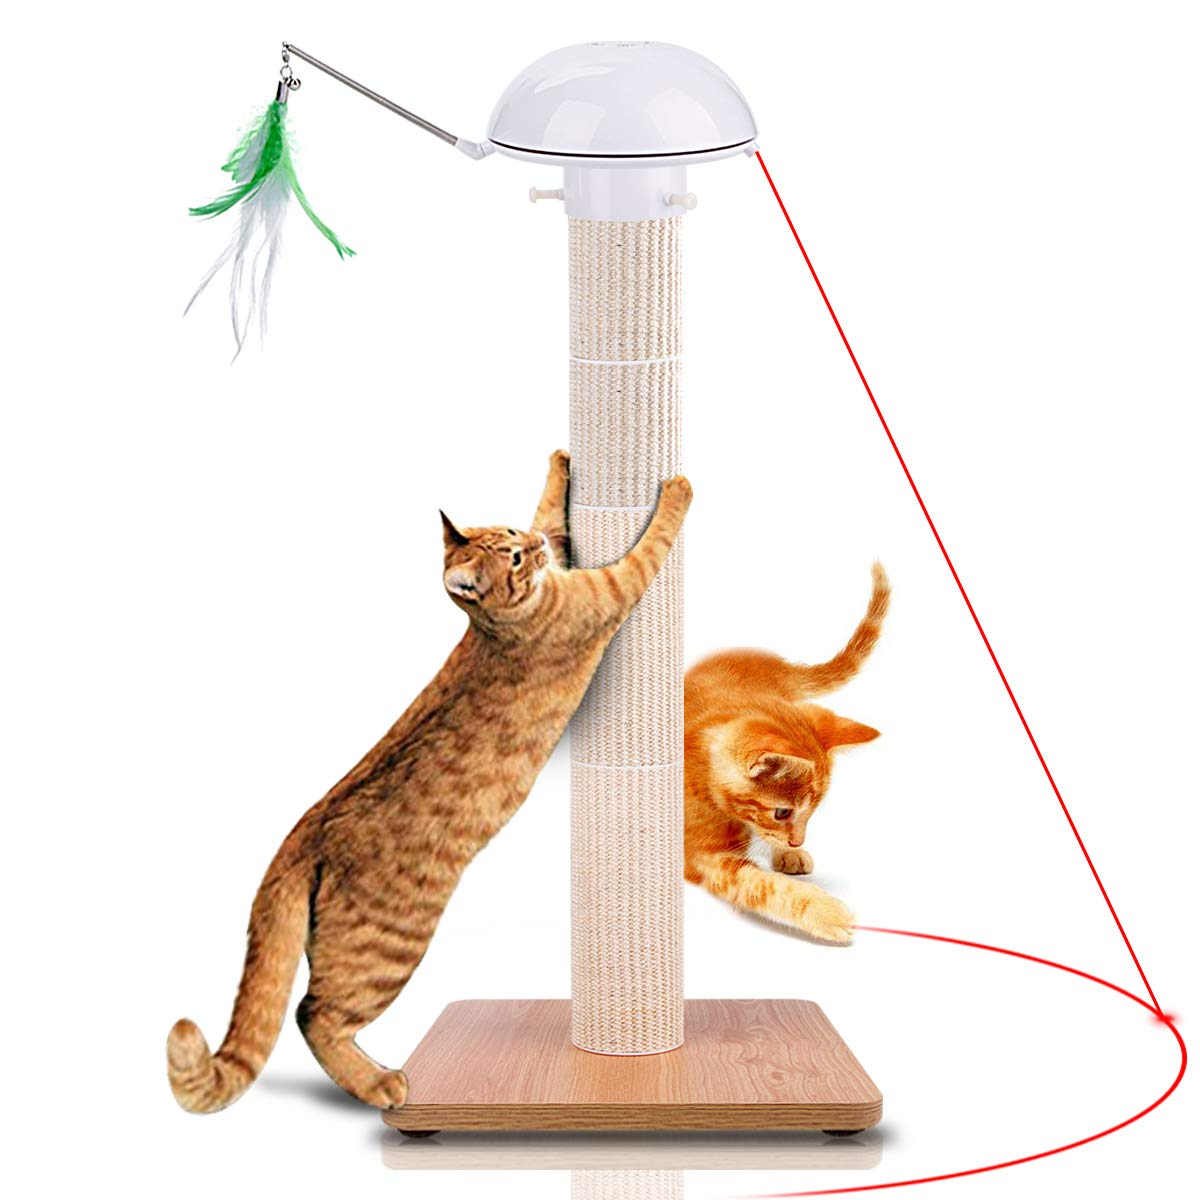 Huicocy Scratching Post, 35 Inches Tall Cat Scratch Post Covered by Allergen-Free Durable Sisal, Cat Post with Interactive Auto Rotating Light Feather and LED Laser Light